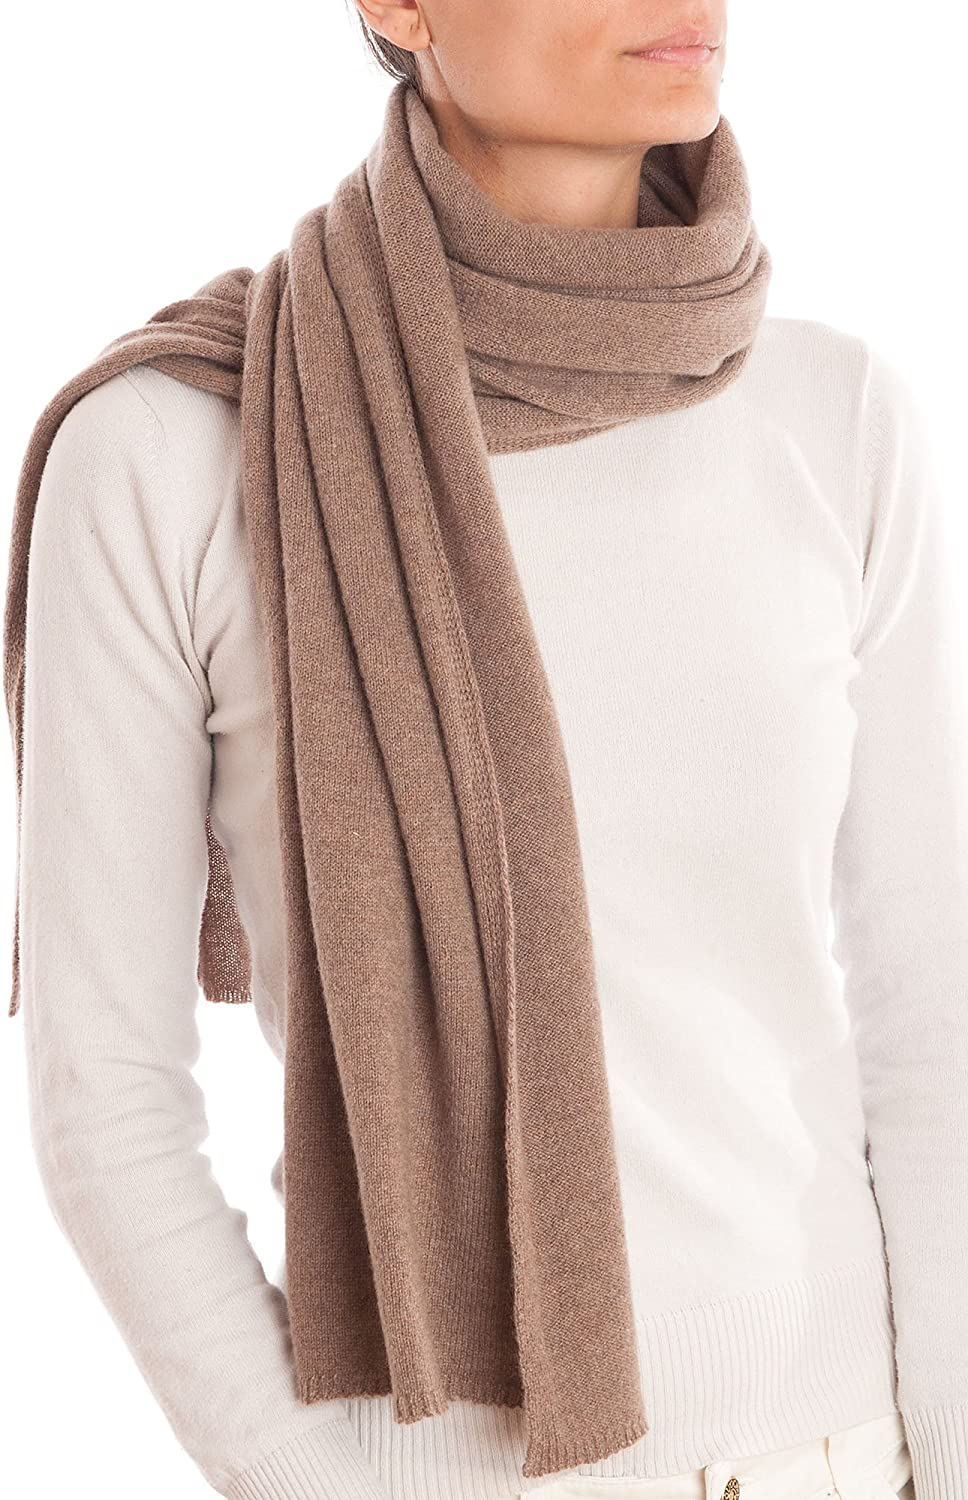 Dalle Piane Cashmere - Scarf 100% cashmere - Made in Italy - Woman/Man, Color: Mink, One size